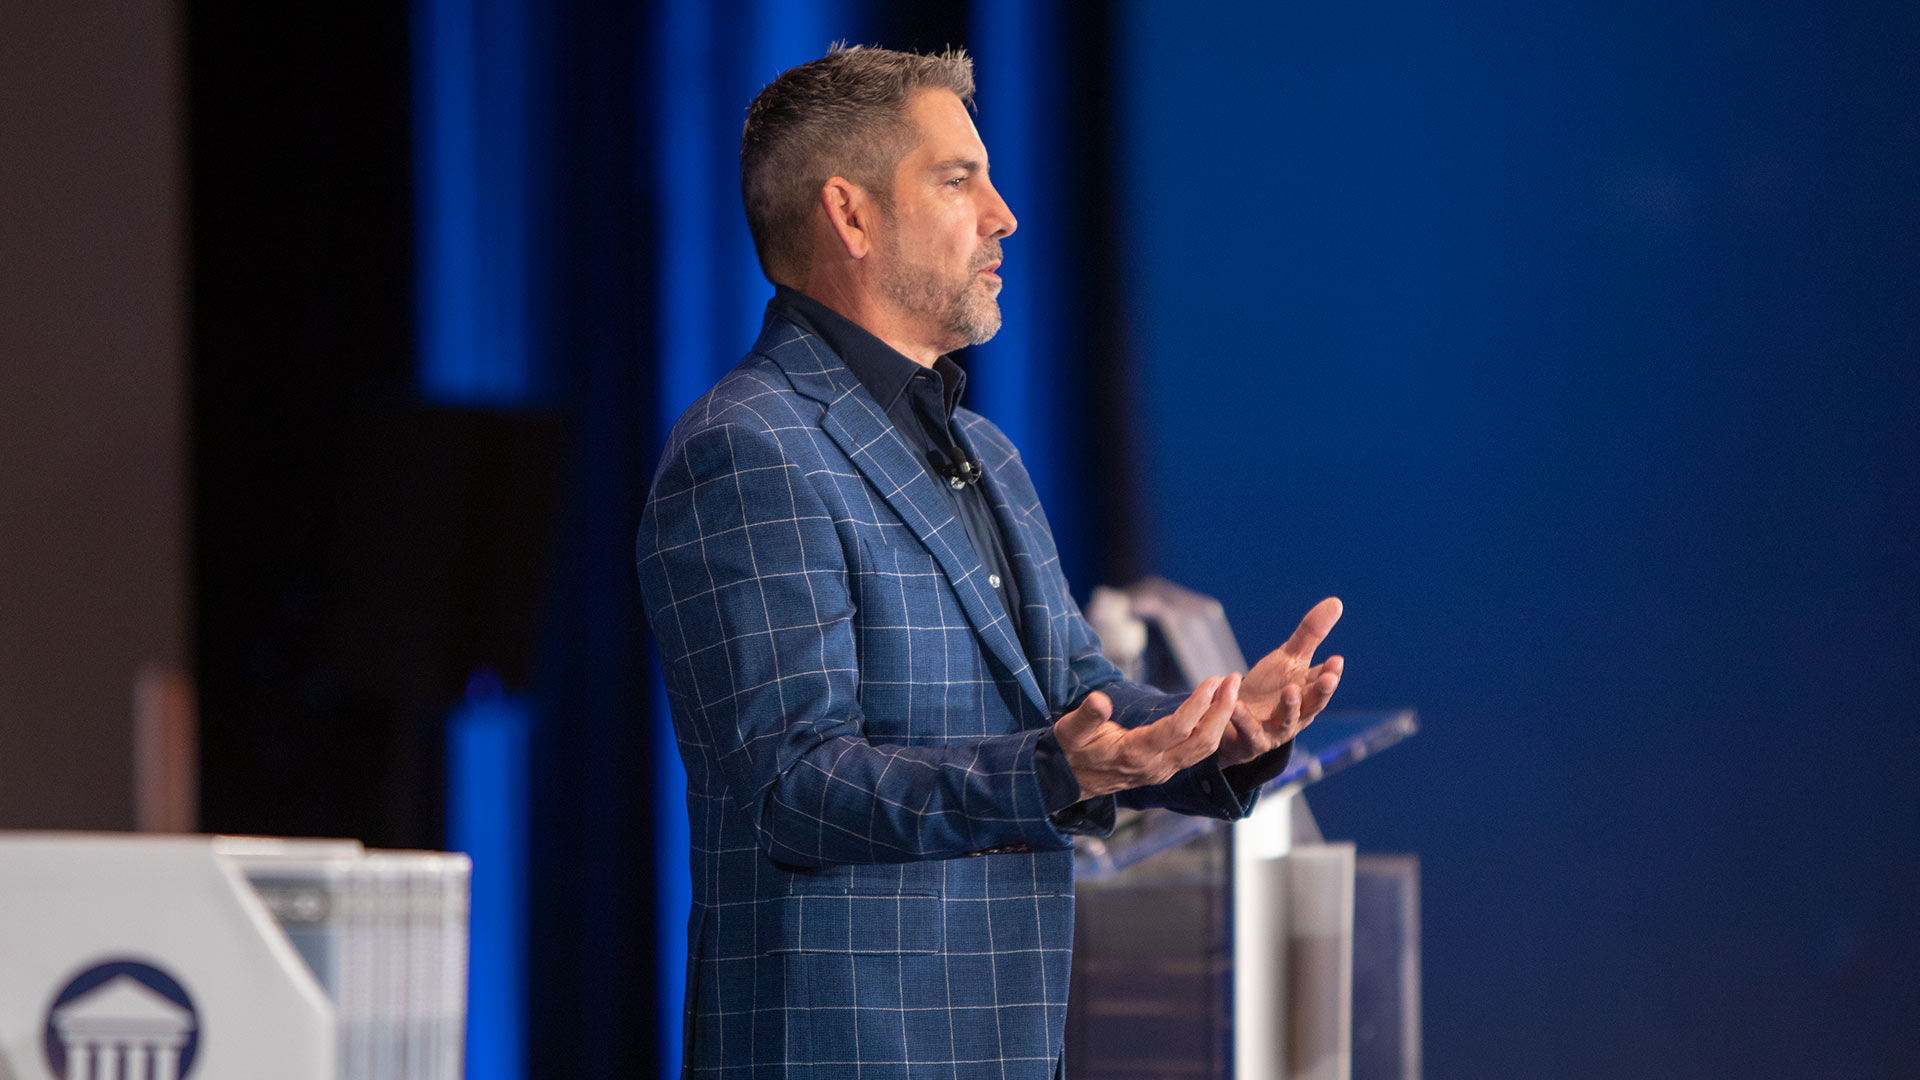 Grant Cardone vs The Middle Class